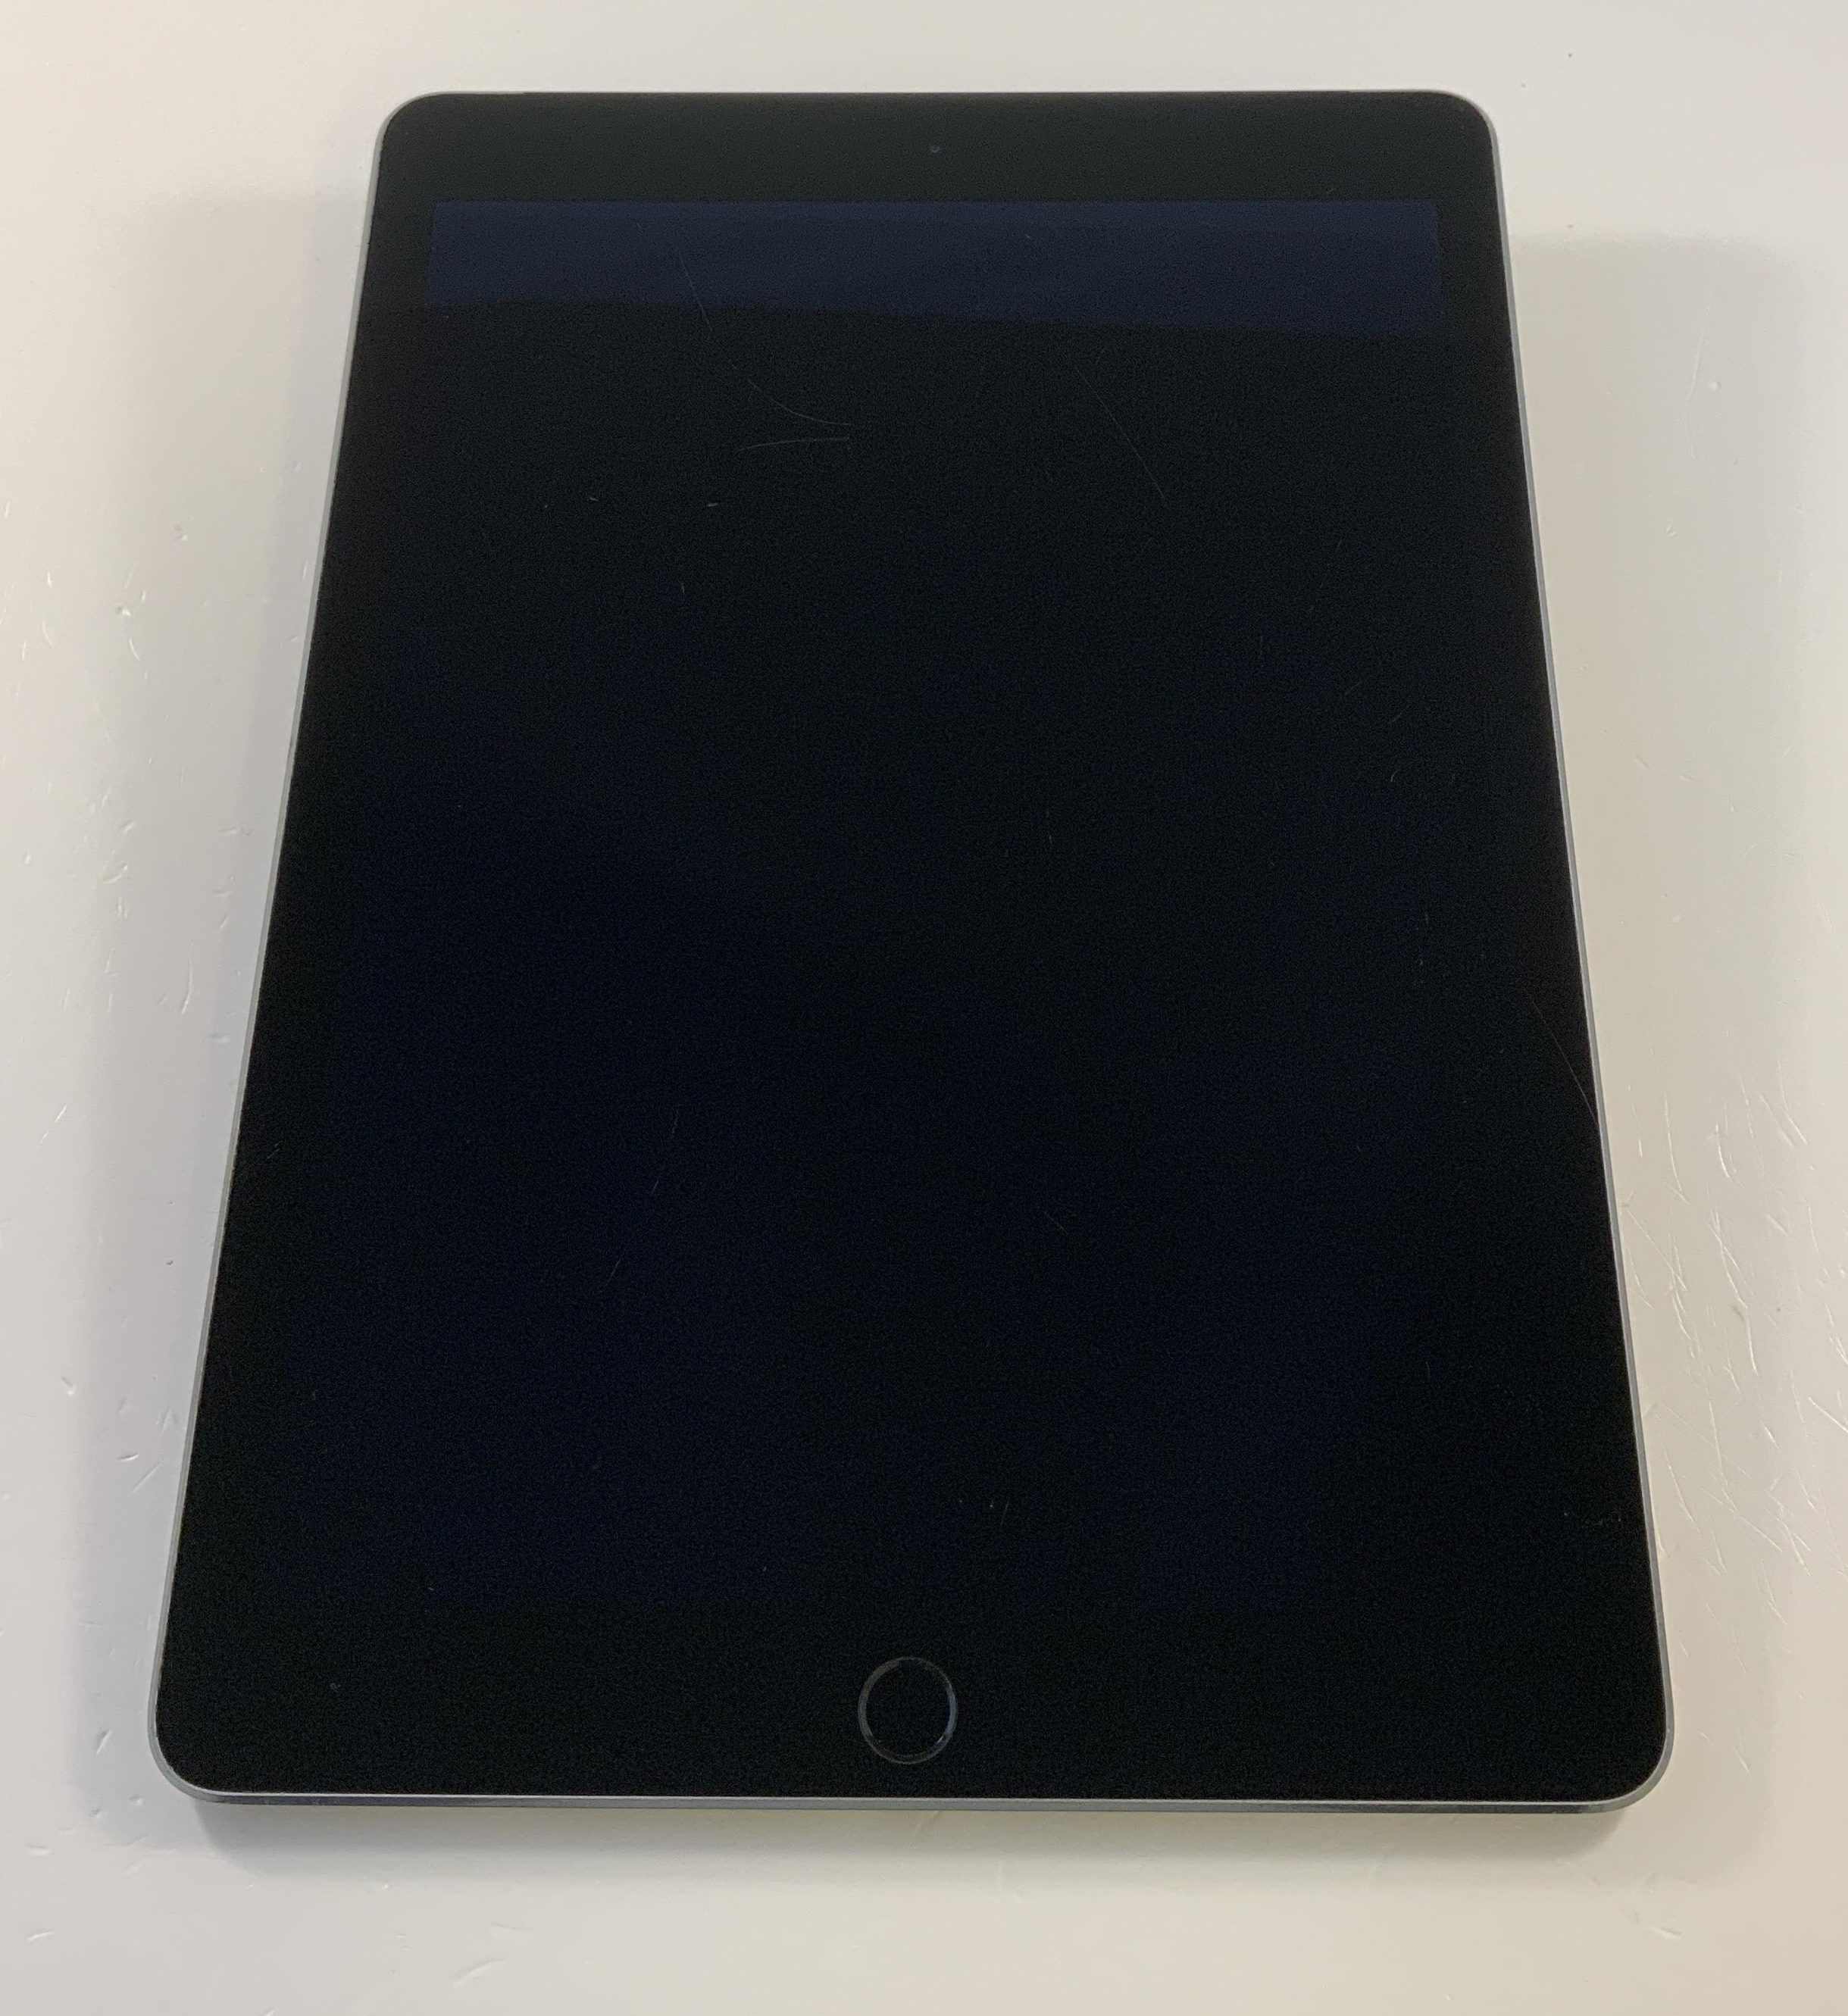 iPad Air 2 Wi-Fi + Cellular 64GB, 64GB, Space Gray, imagen 1